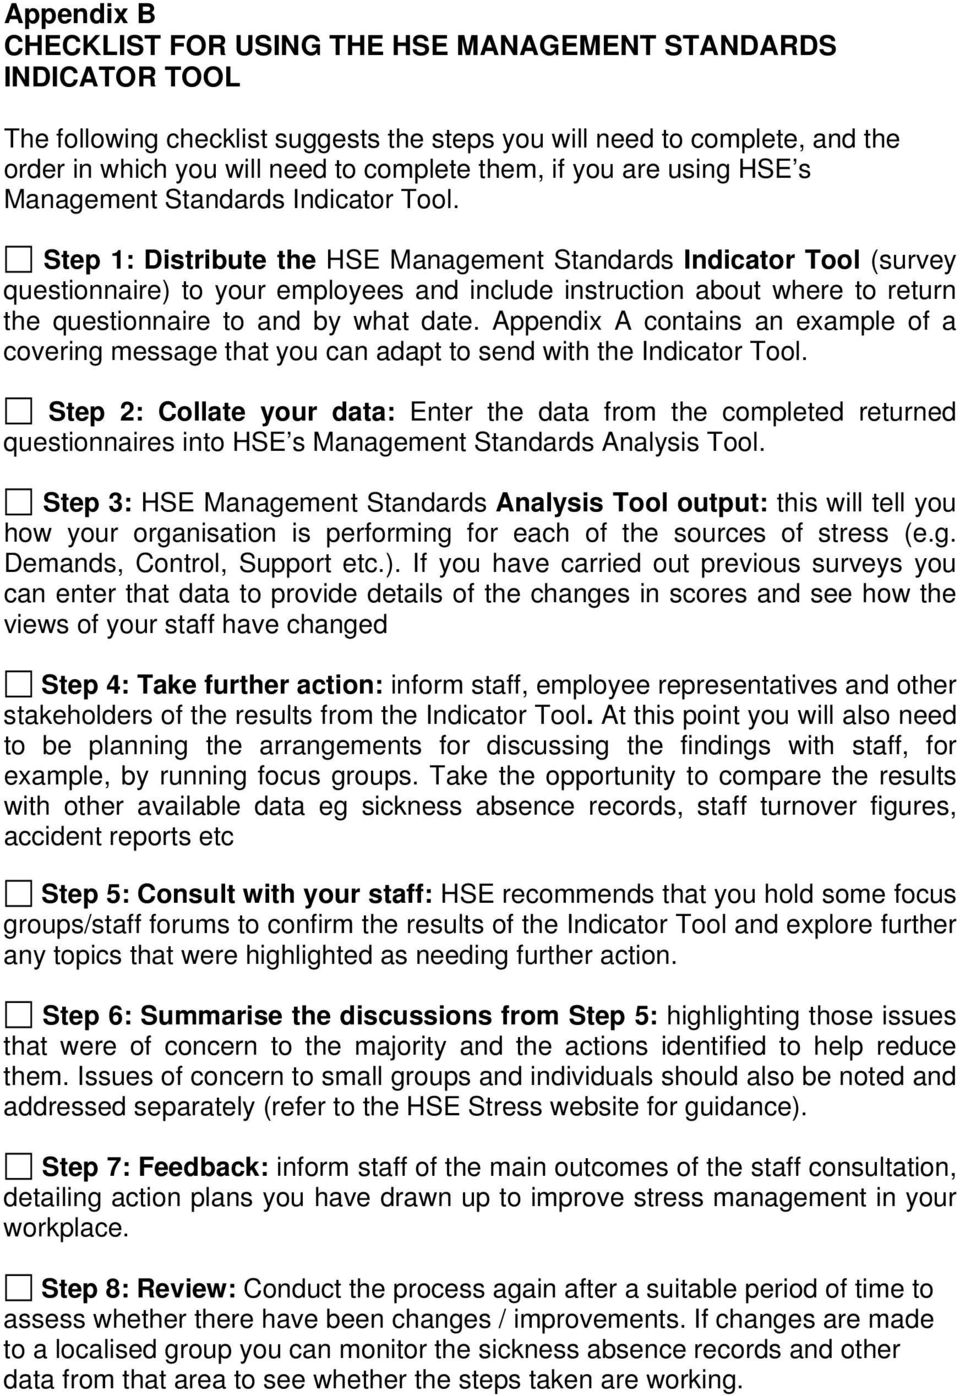 Step 1: Distribute the HSE Management Standards Indicator Tool (survey questionnaire) to your employees and include instruction about where to return the questionnaire to and by what date.